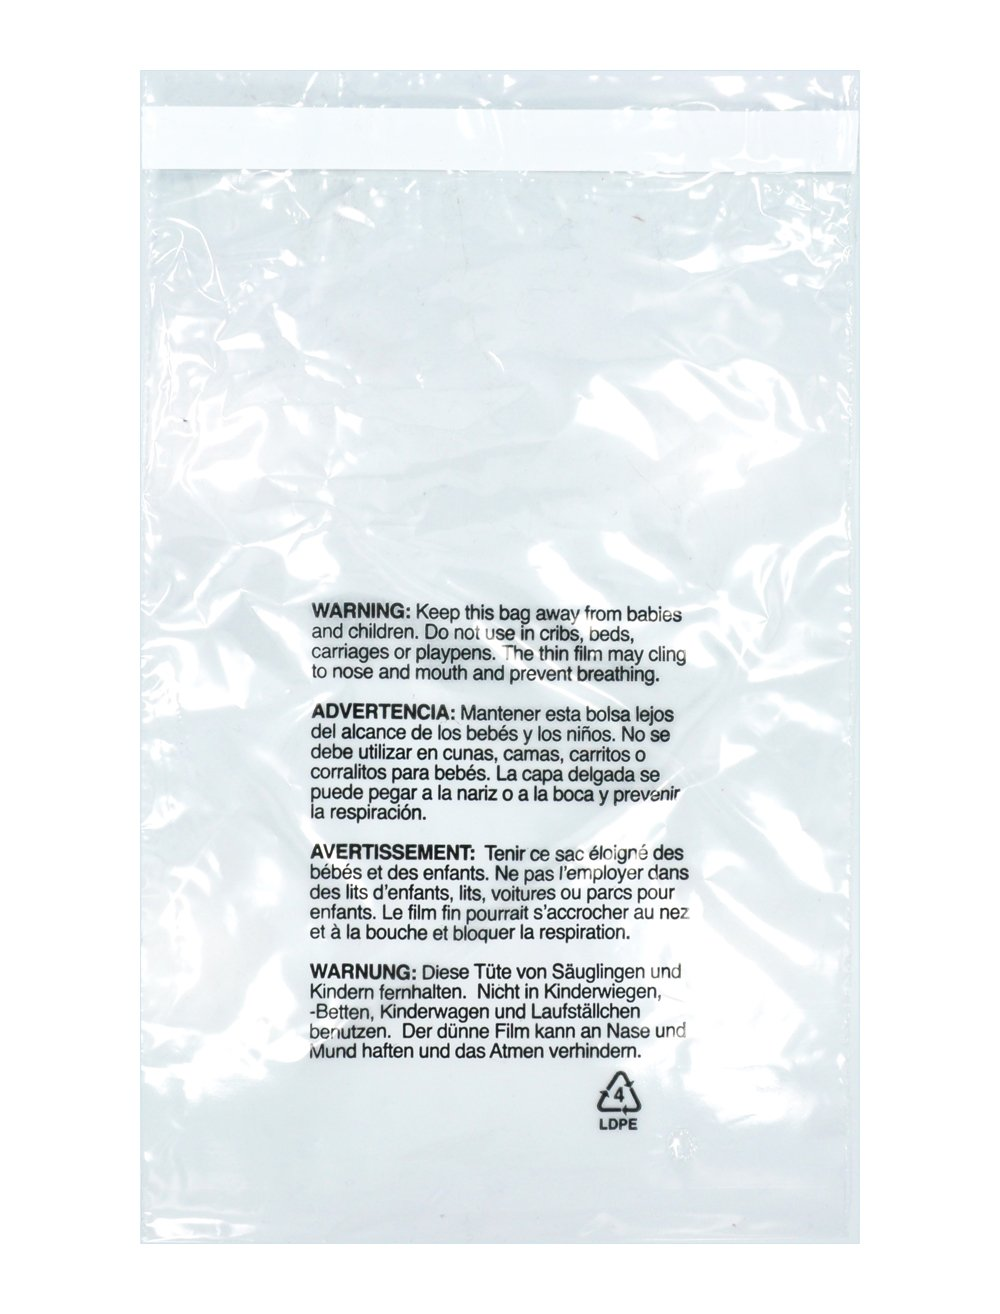 Amazon.com: Suffocation Warning Poly Bag Self Seal 1.3 Mil 200 Count (100 Ea. 6